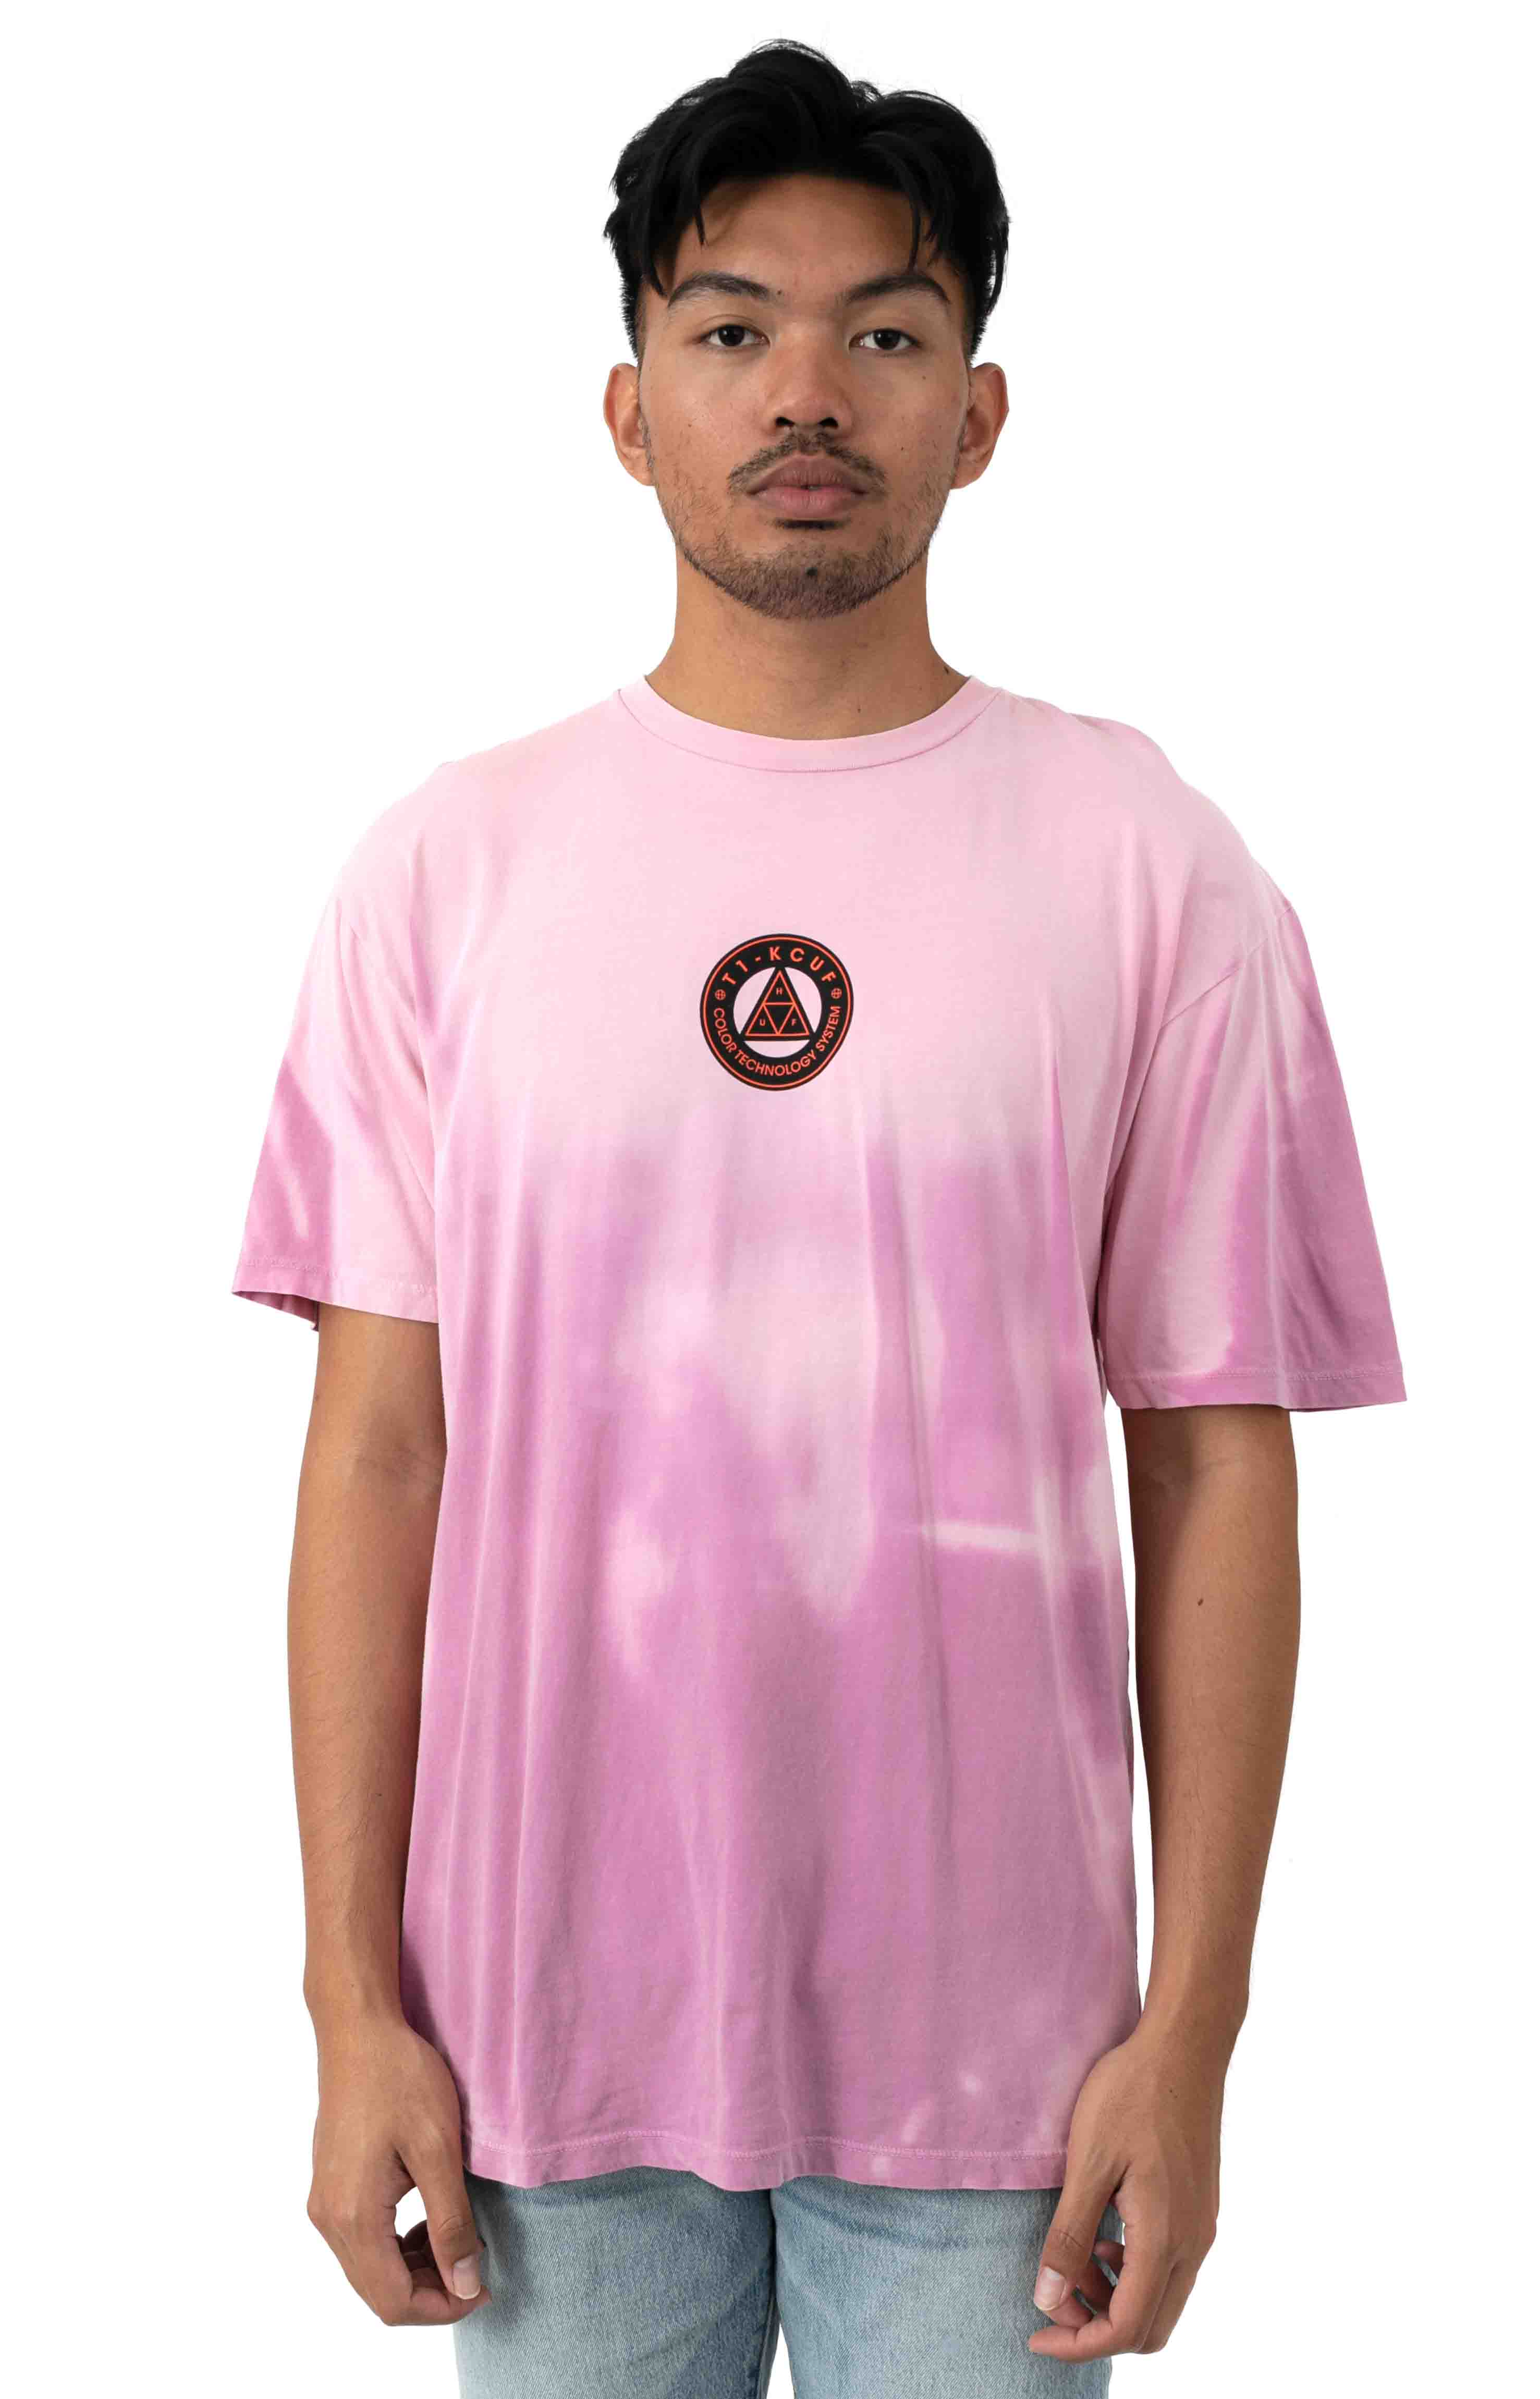 Color Tech TT T-Shirt - Violet